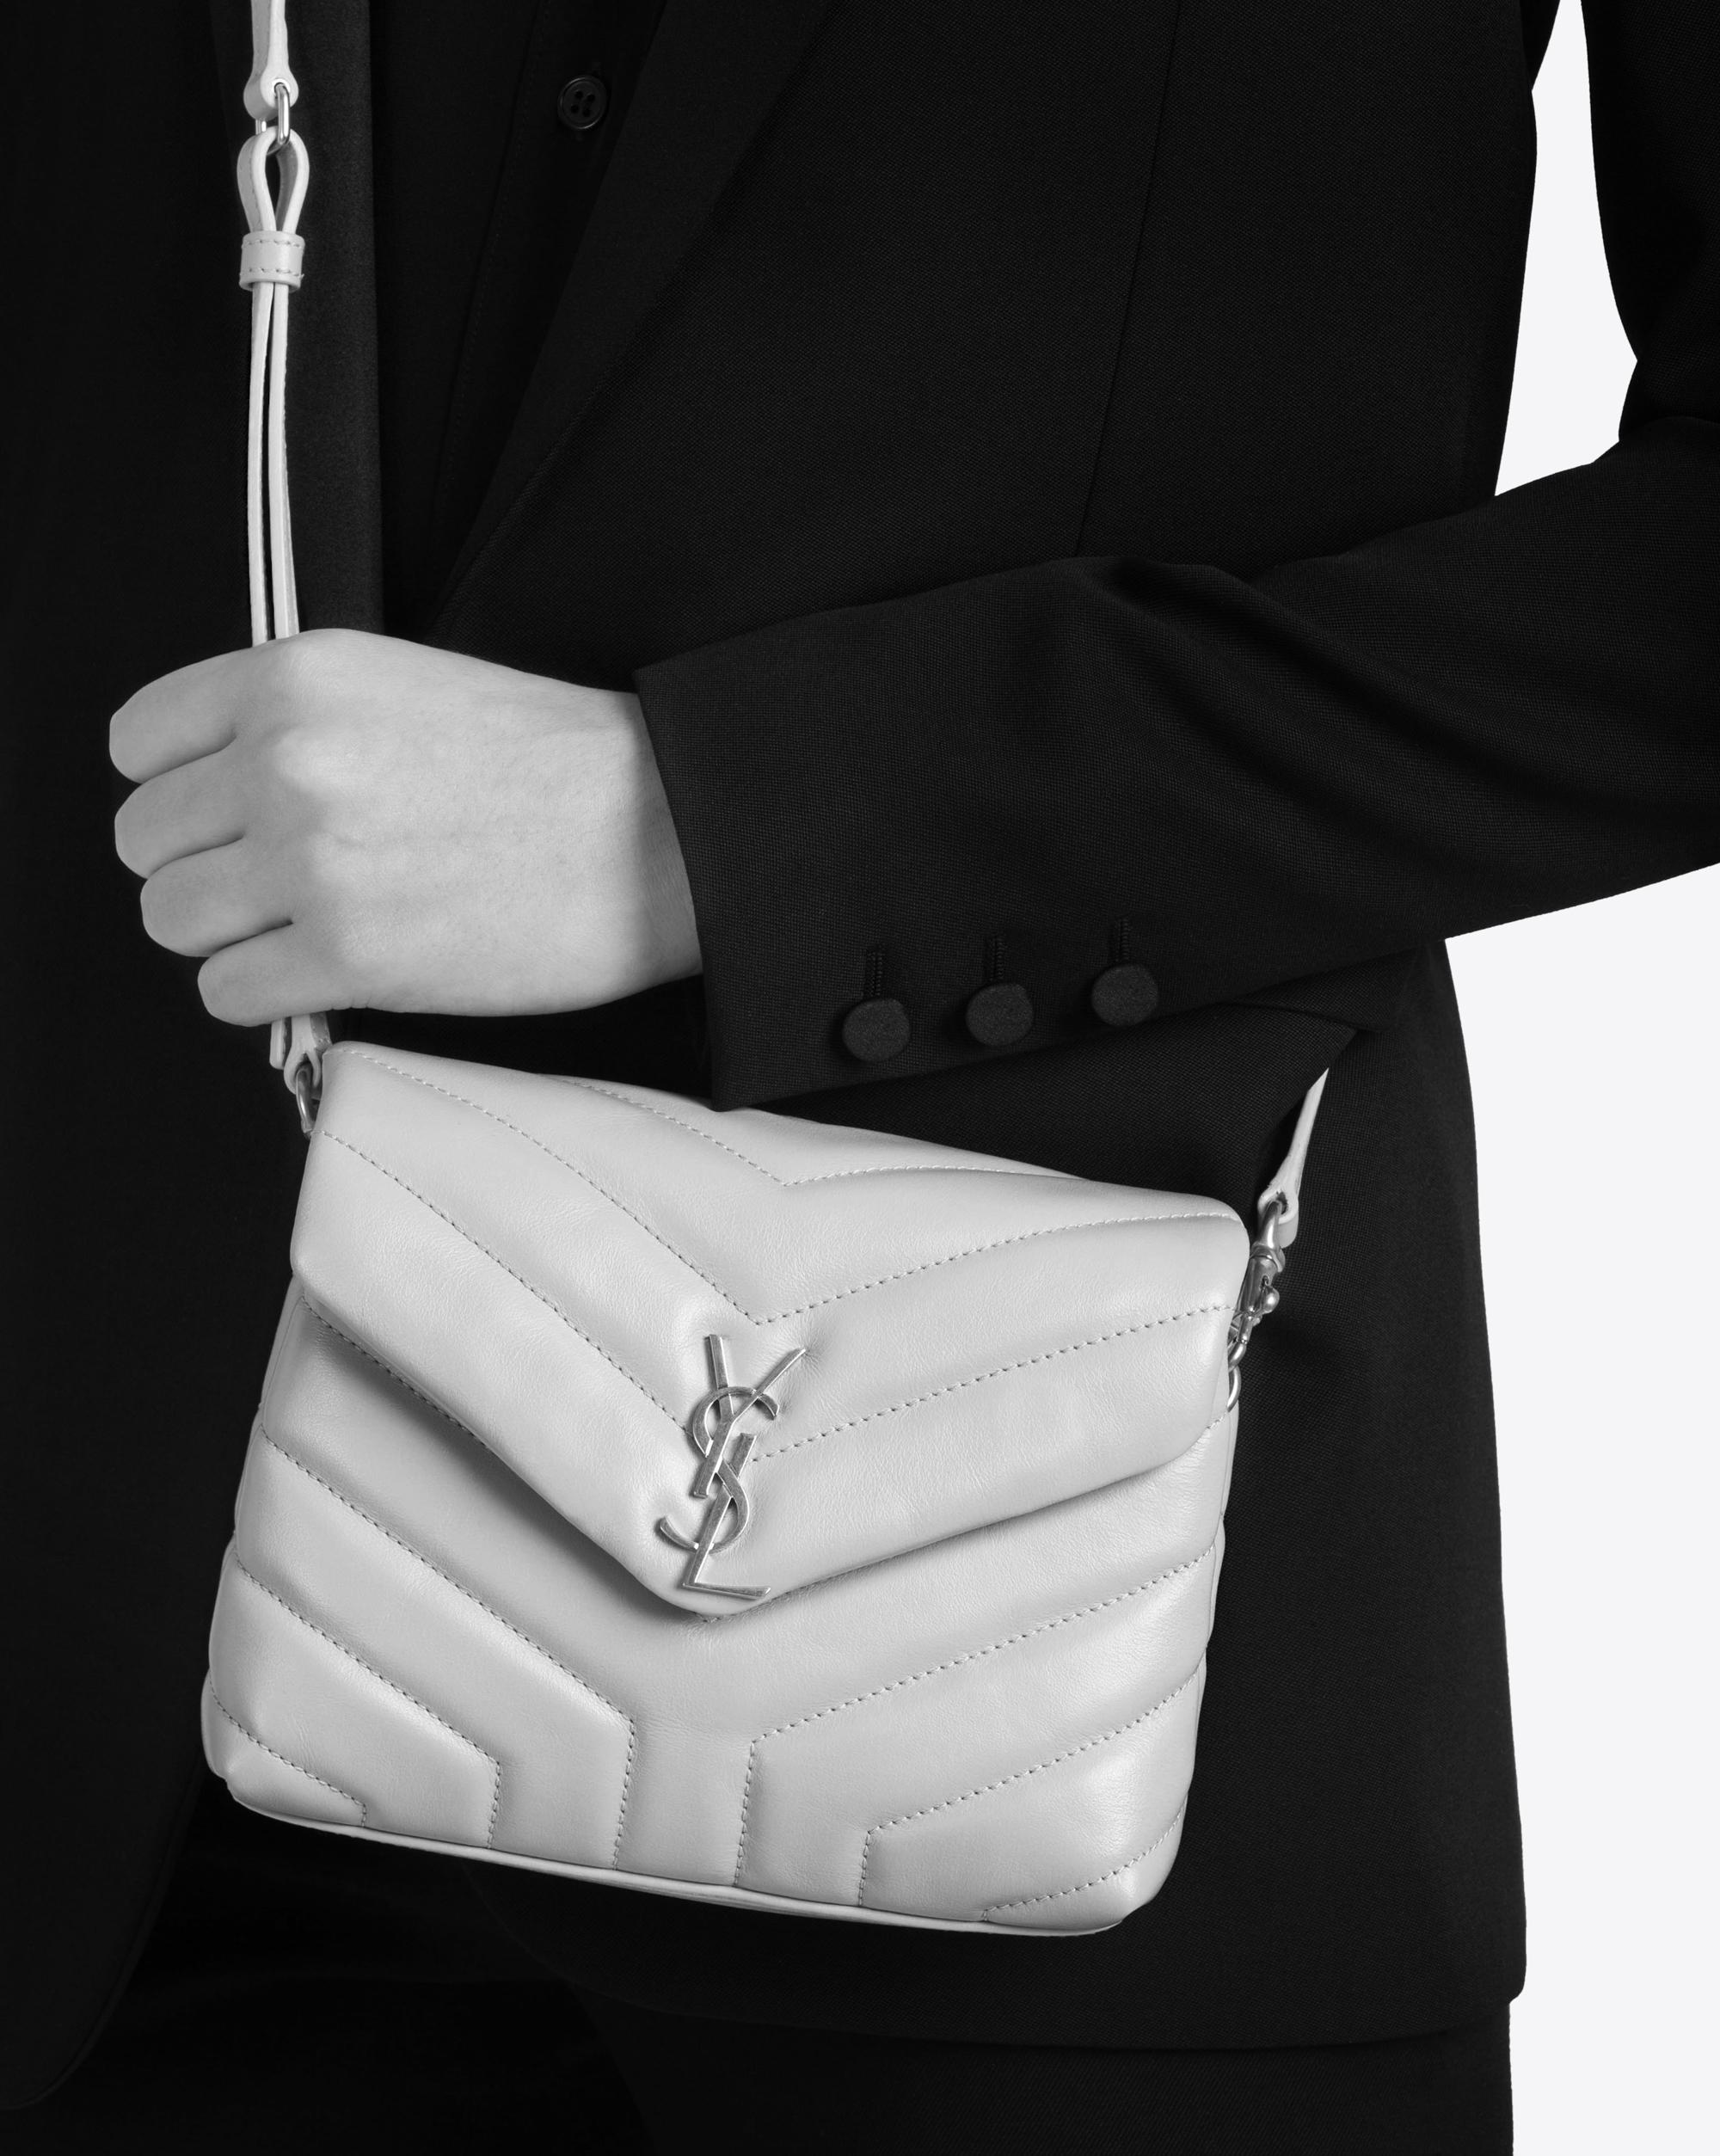 Lyst - Saint Laurent Grey Toy Loulou Bag in Gray 9be092440e752